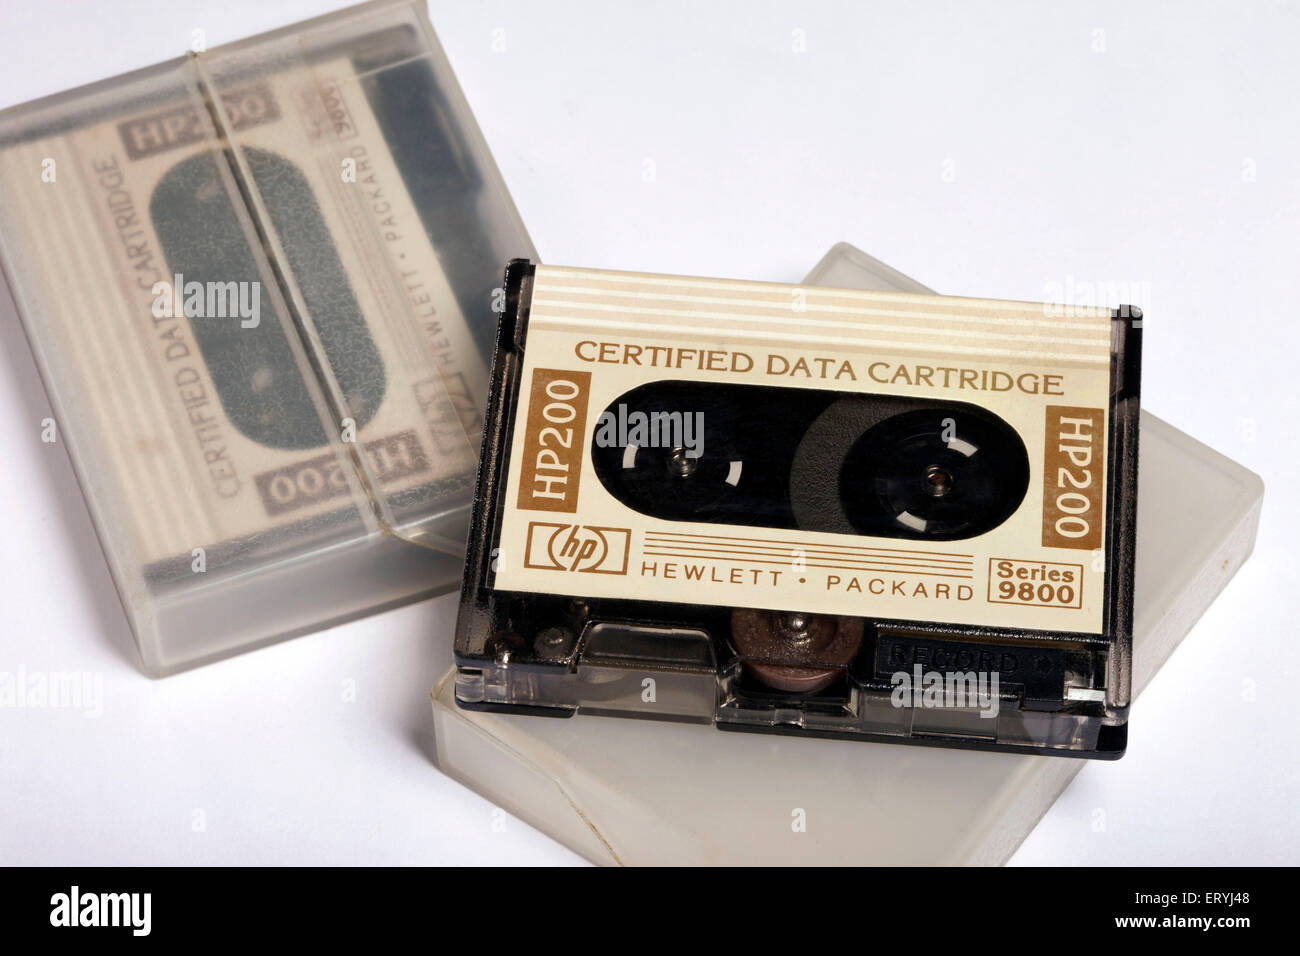 computer data storage mini magnetic tape India Asia - Stock Image